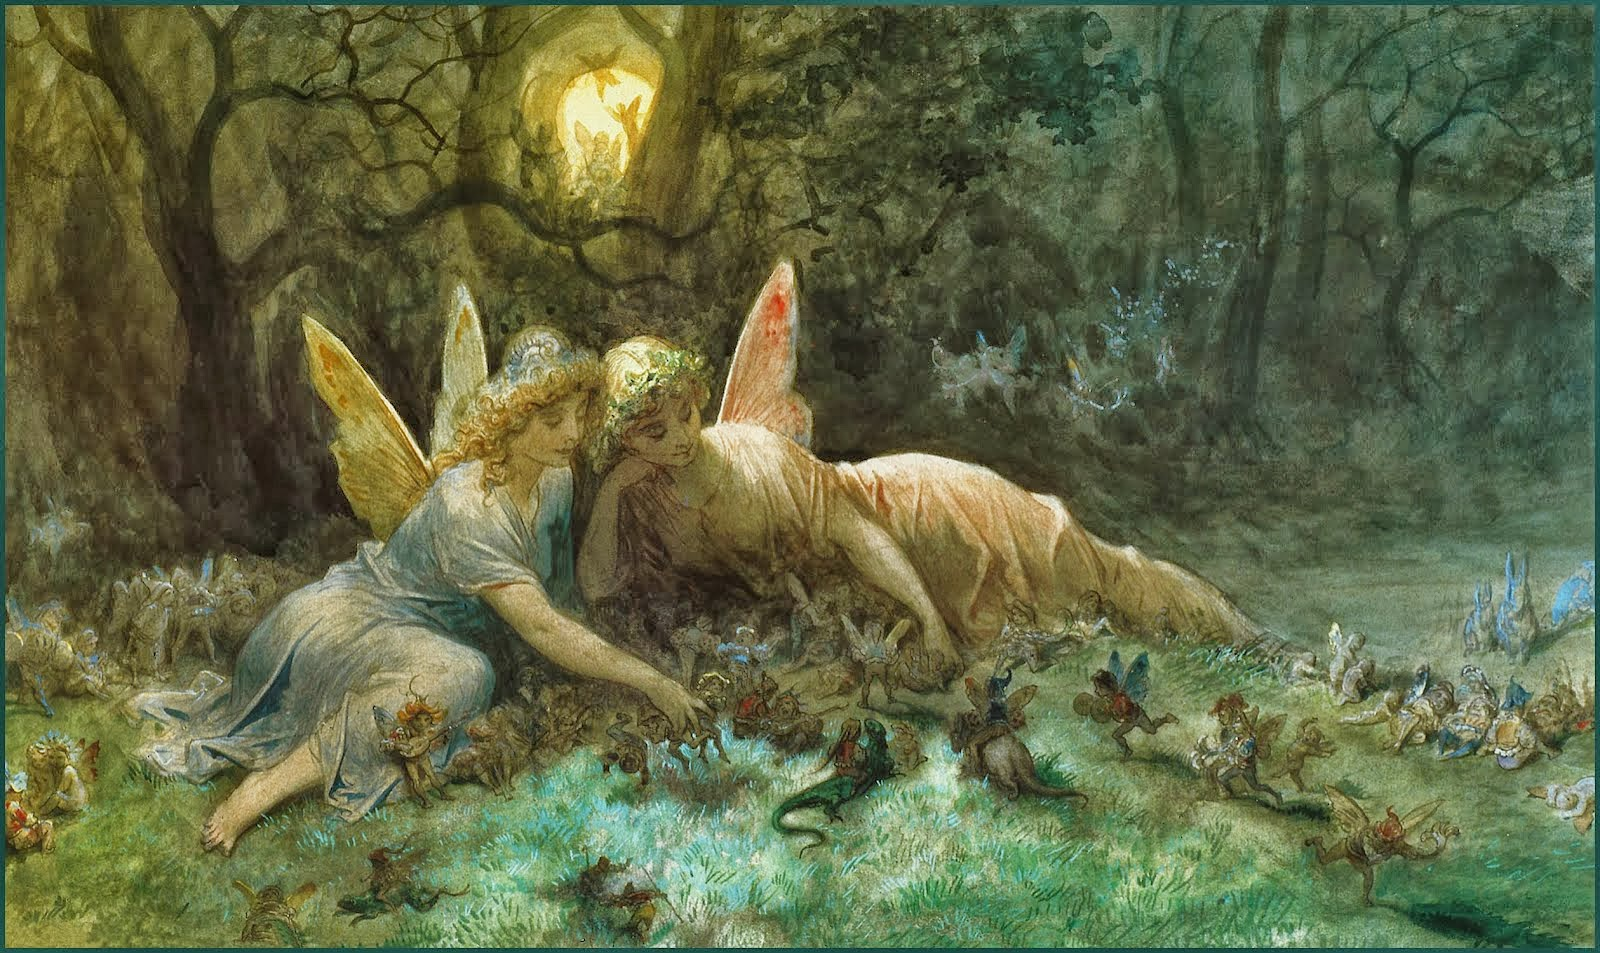 The Fairies, oil painting by Gustave Doré